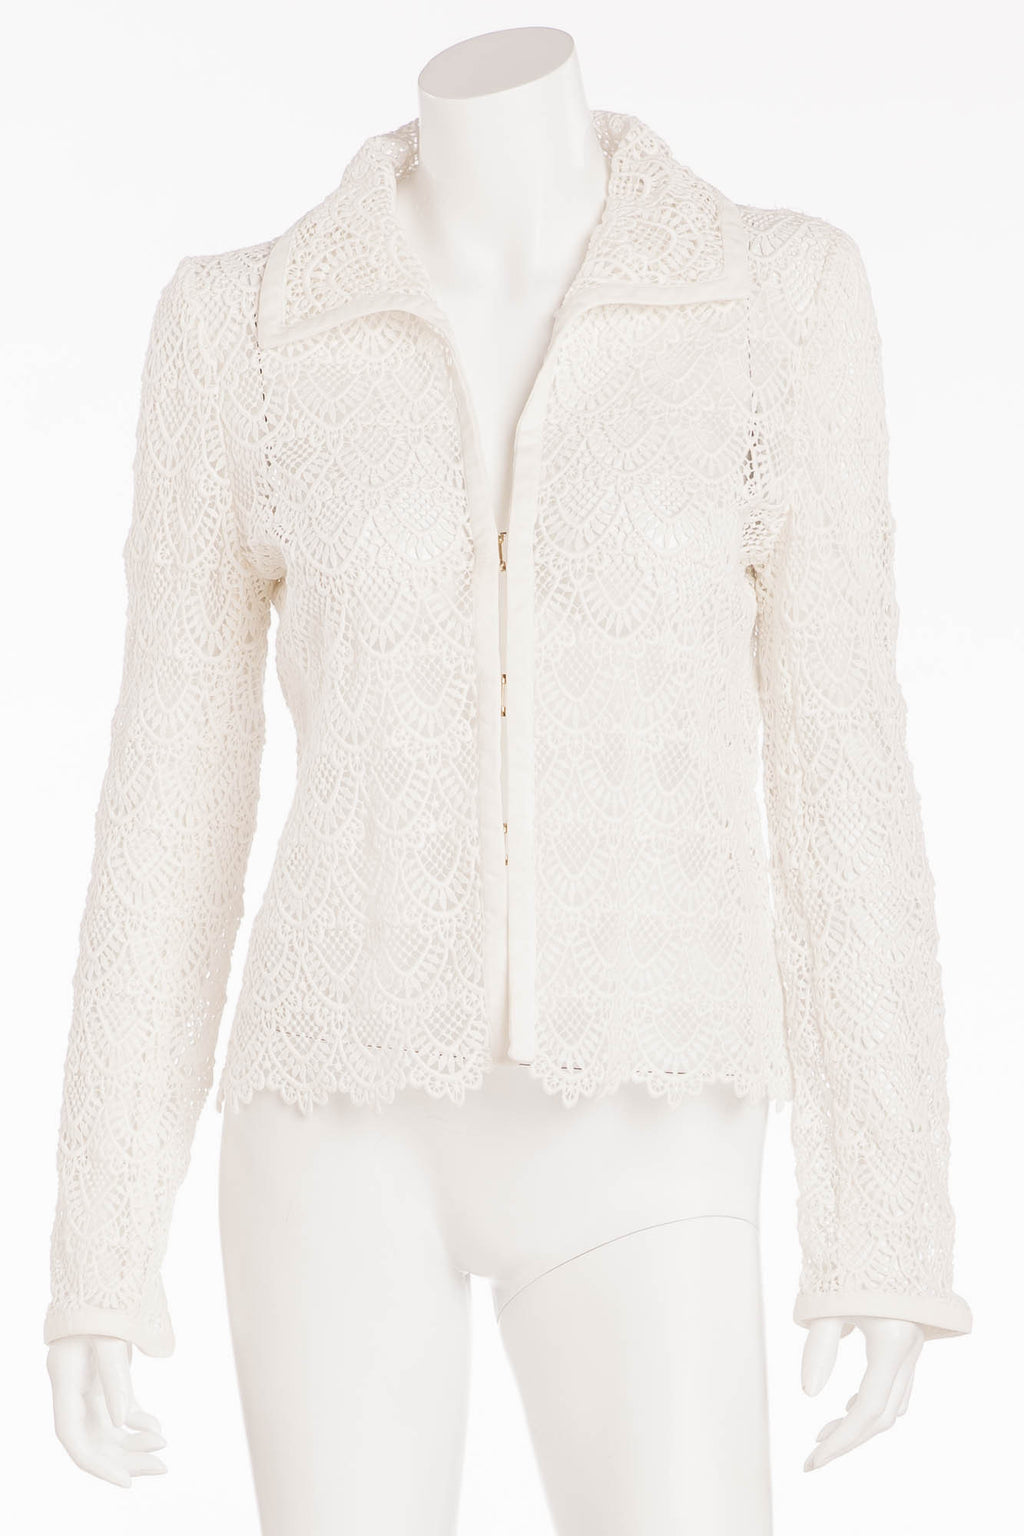 Valentino - White Lace  Jacket- US 8